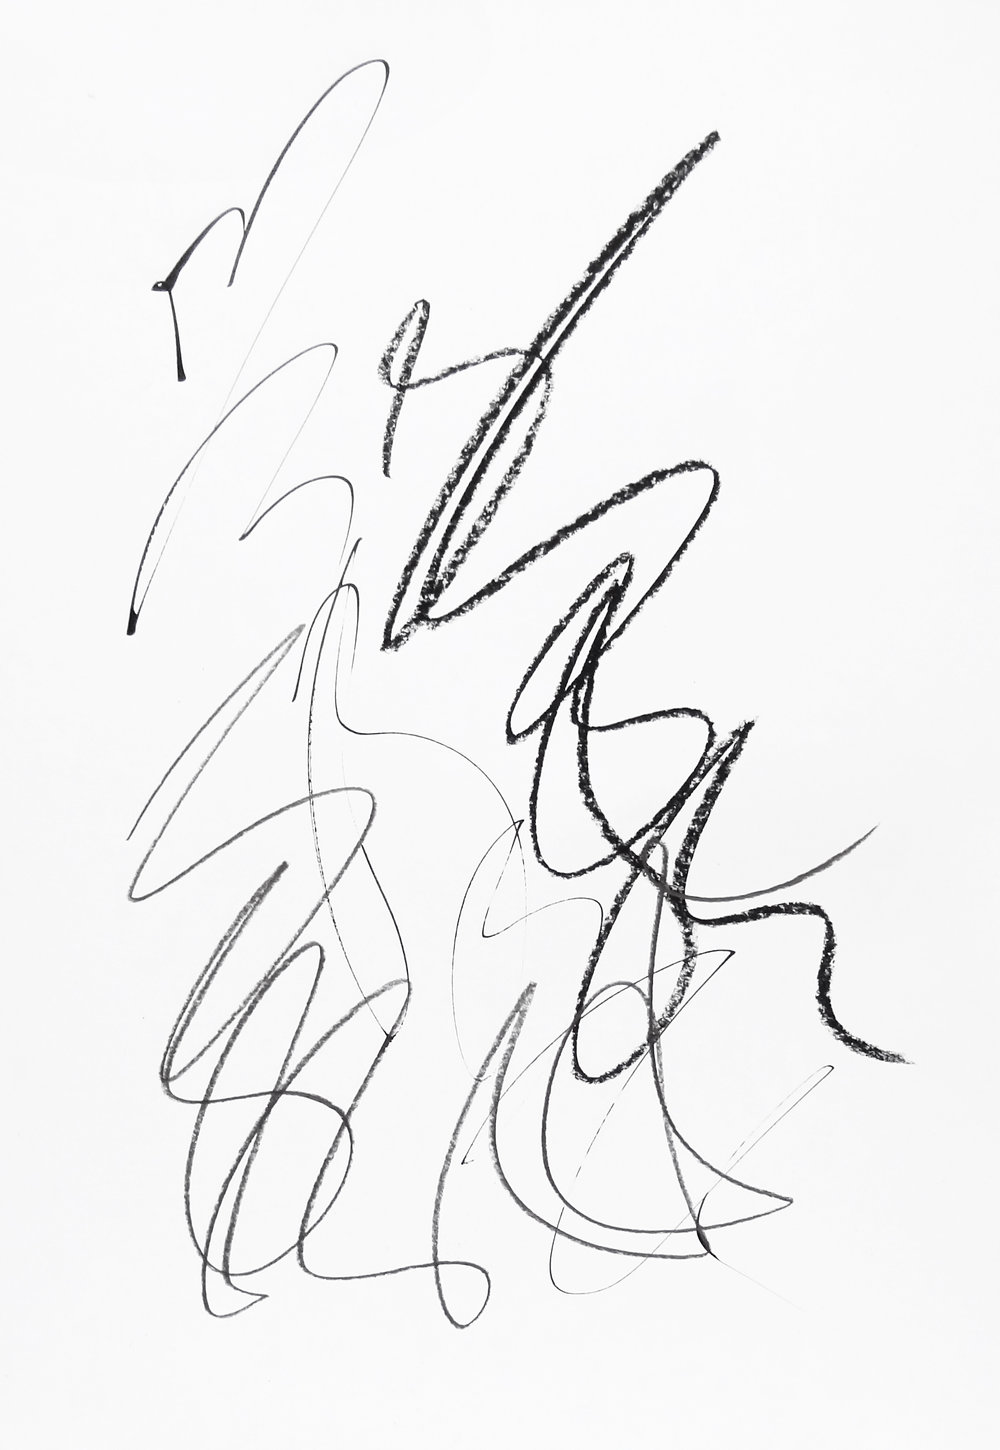 rhythm and flow studies, 2019 calligraphy ink, pencil and chalk on paper 42,0 x 29,7 cm (11-19)